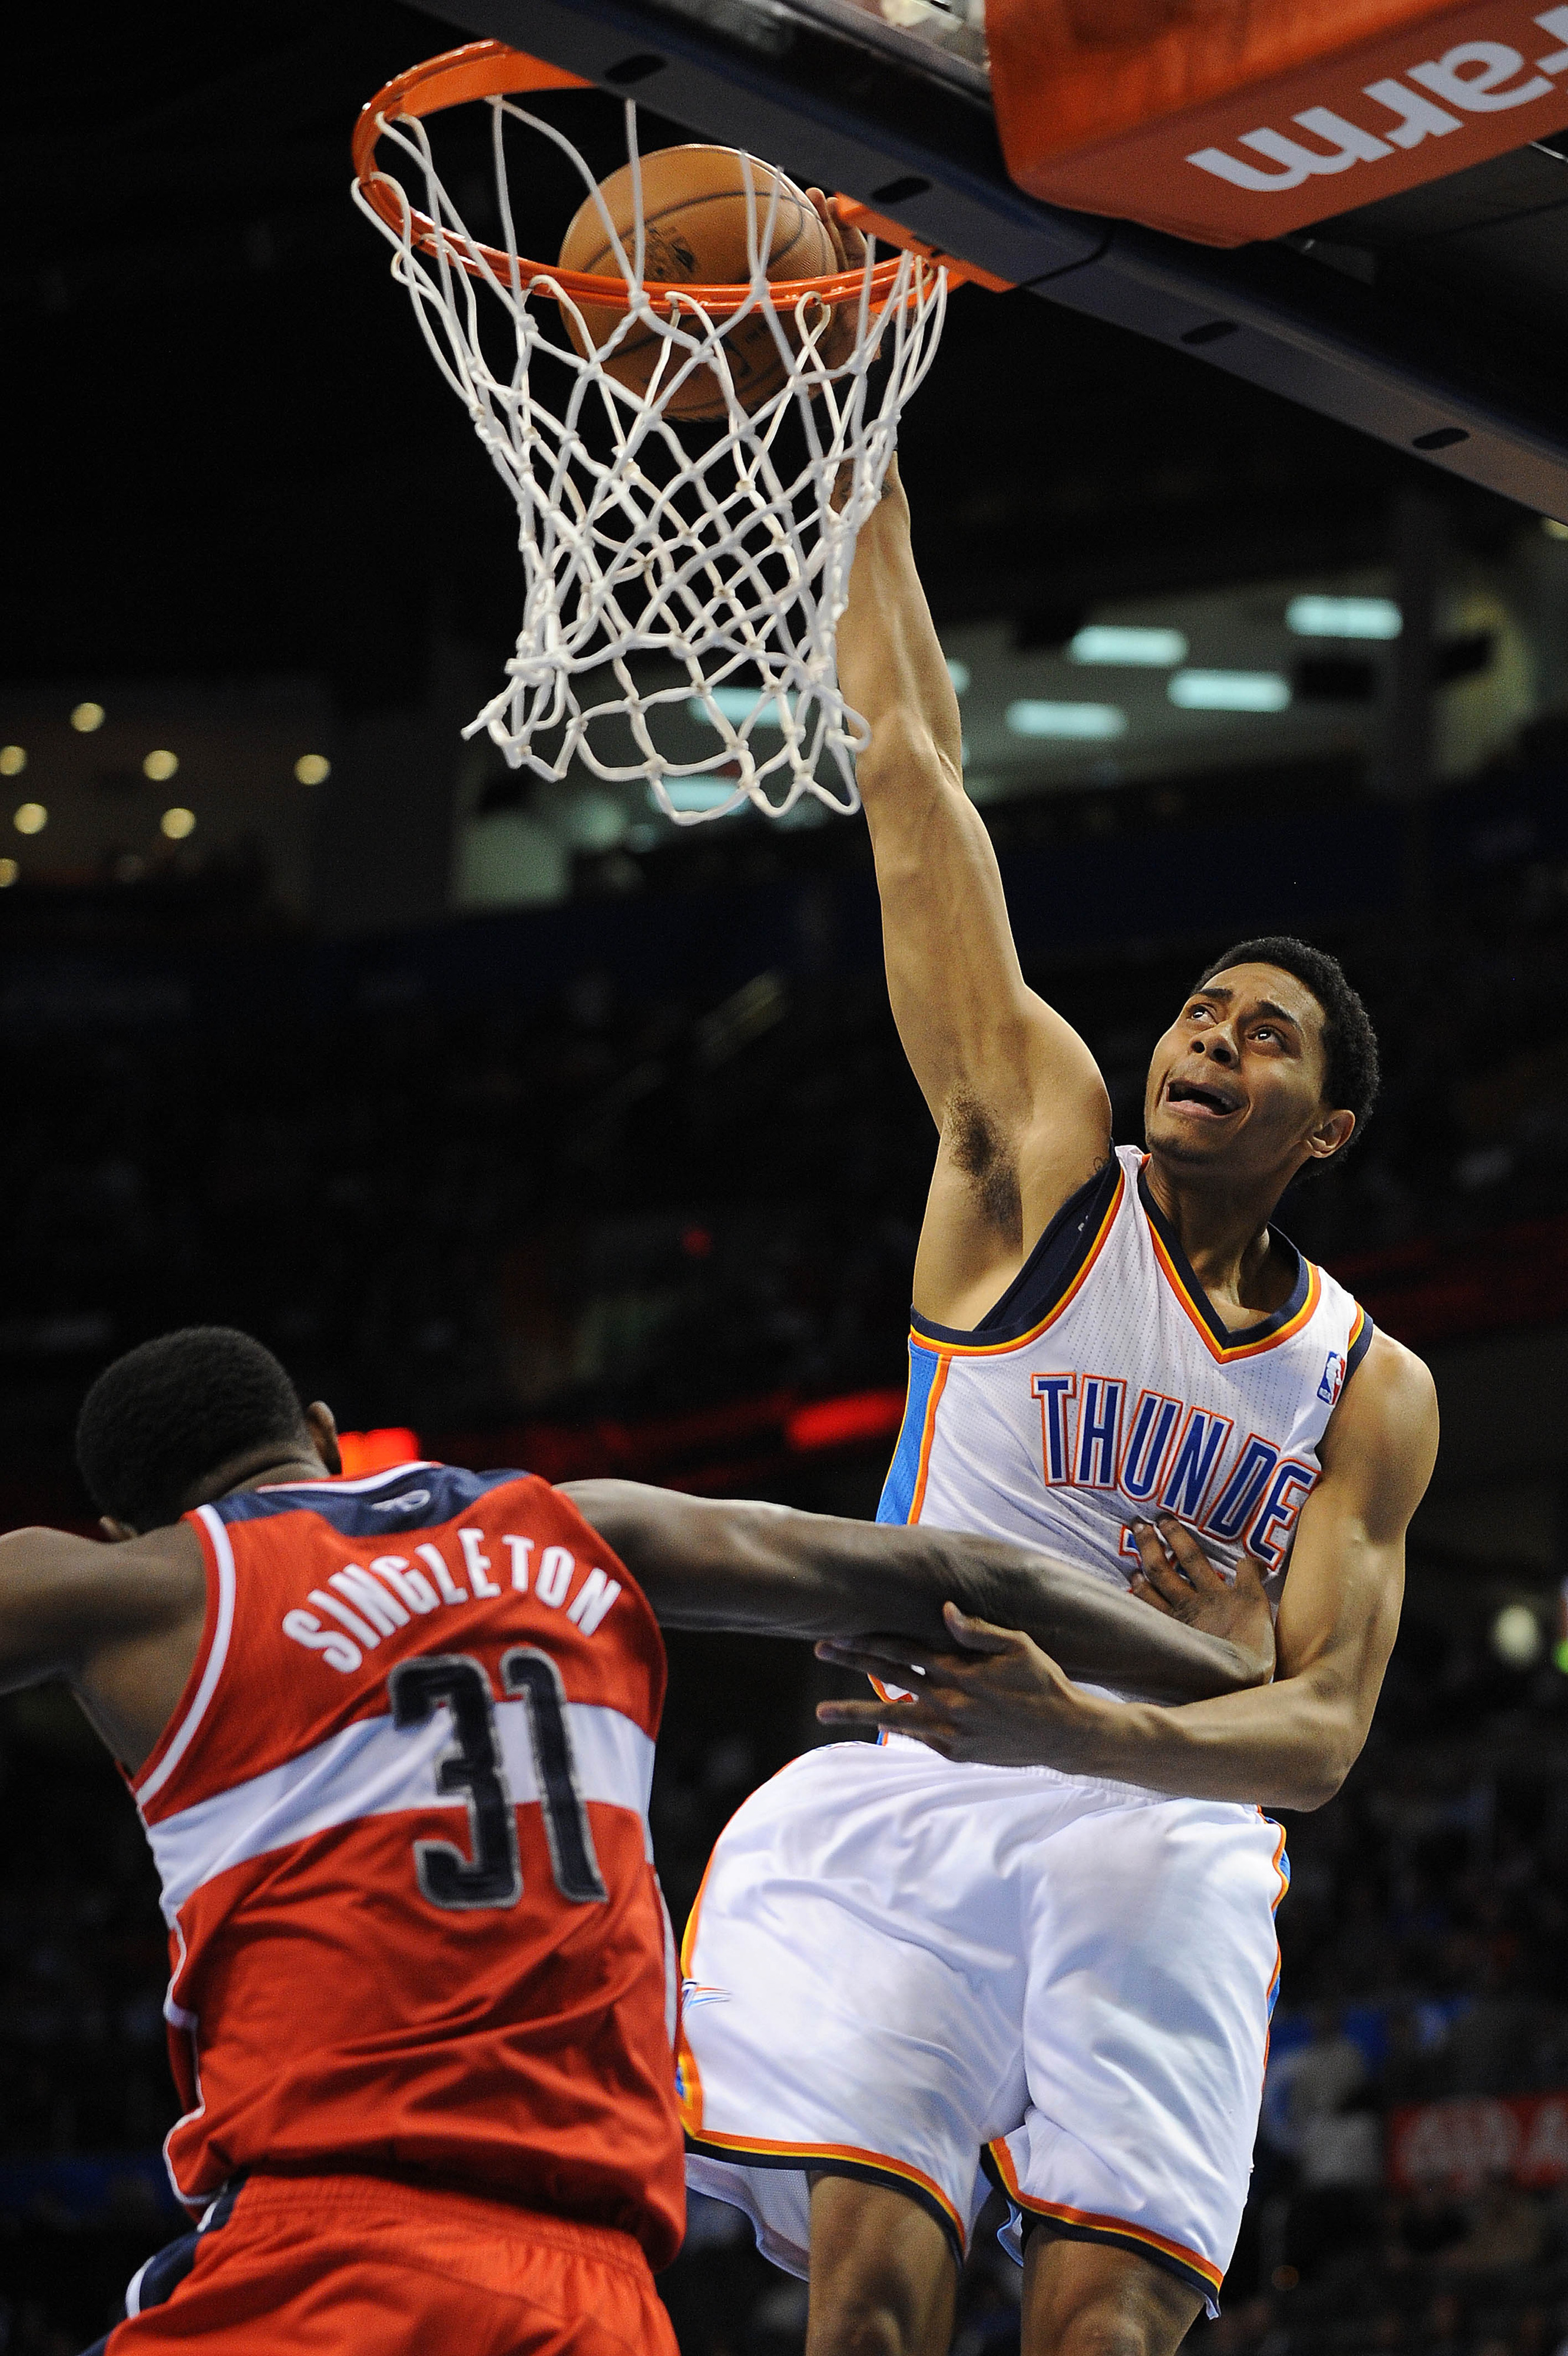 This is a very excellent dunk face.